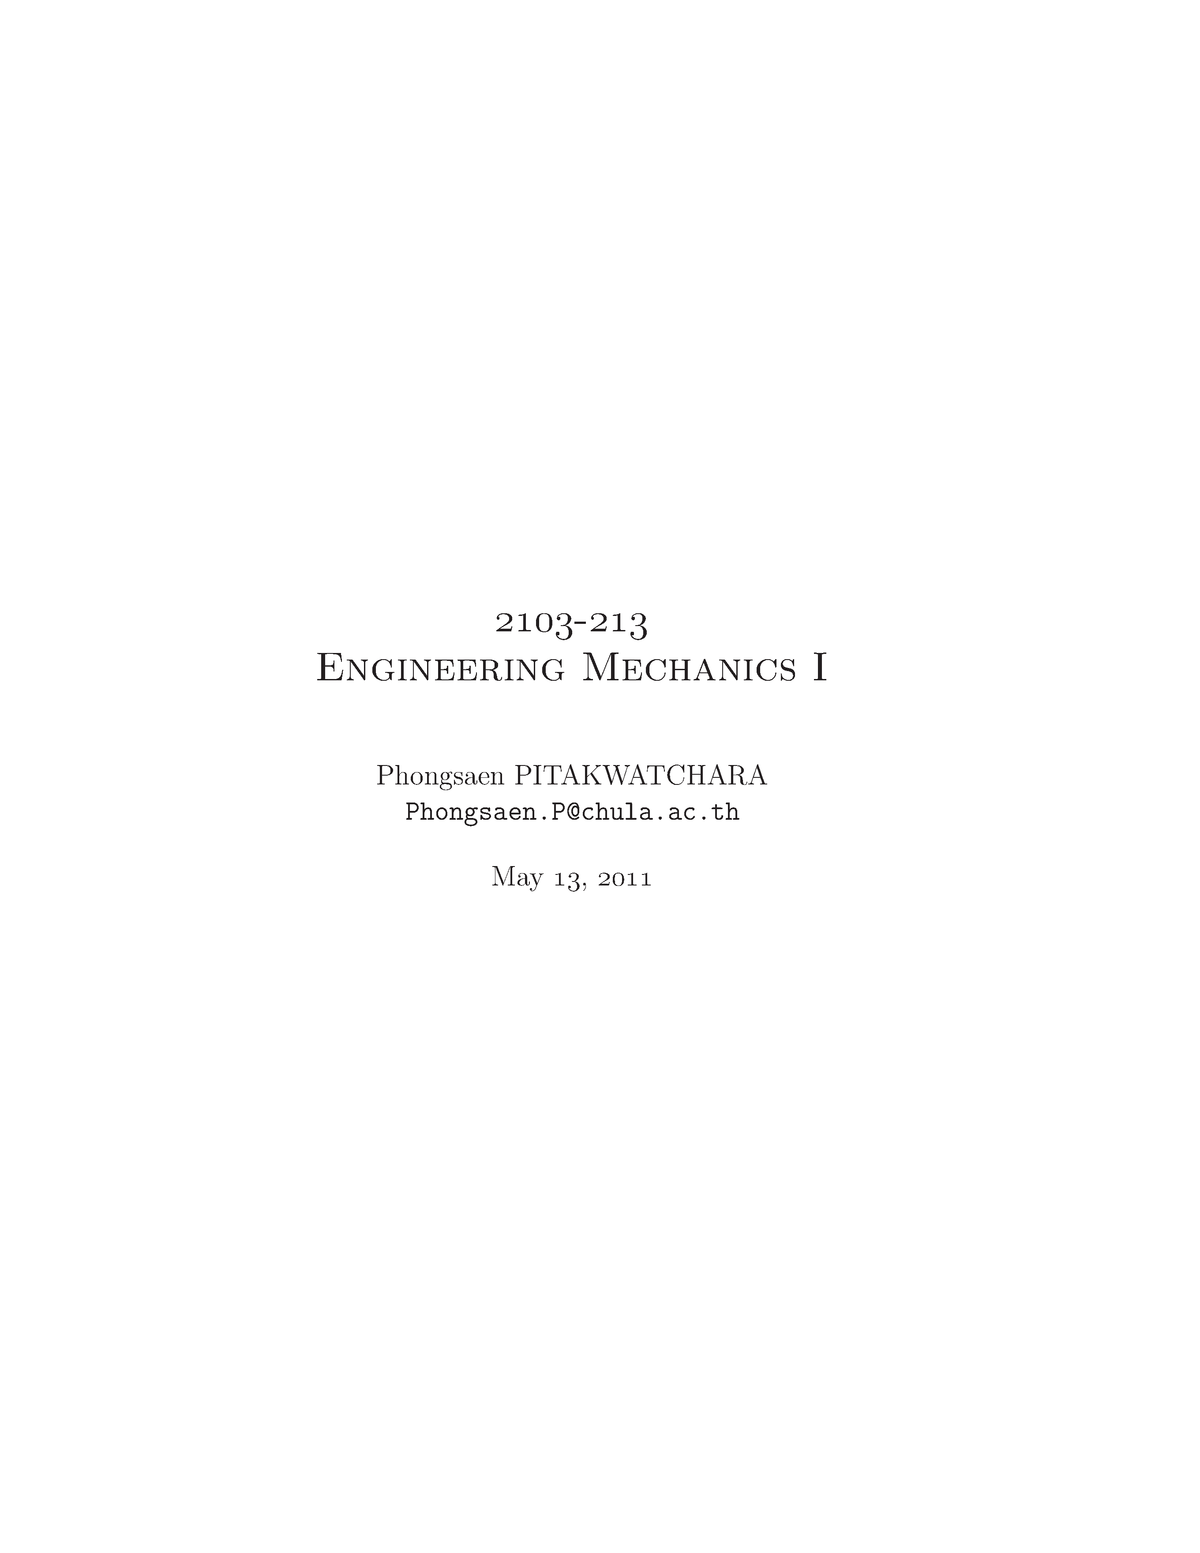 Engineering mechanics solved problems pdf - GE6253 - StuDocu